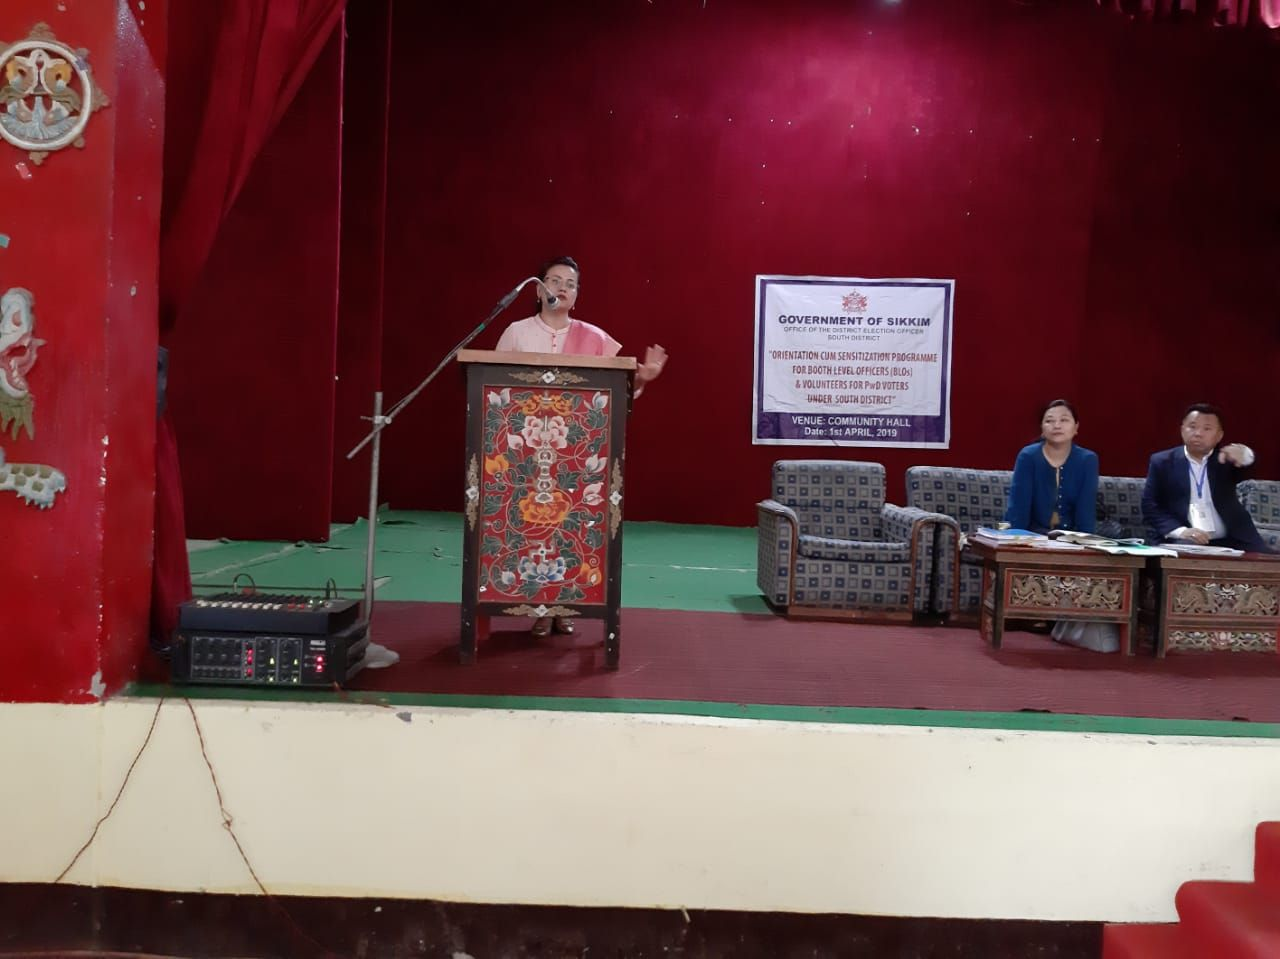 General Elections,2019 preparedness - Training of various officials involved in Election process